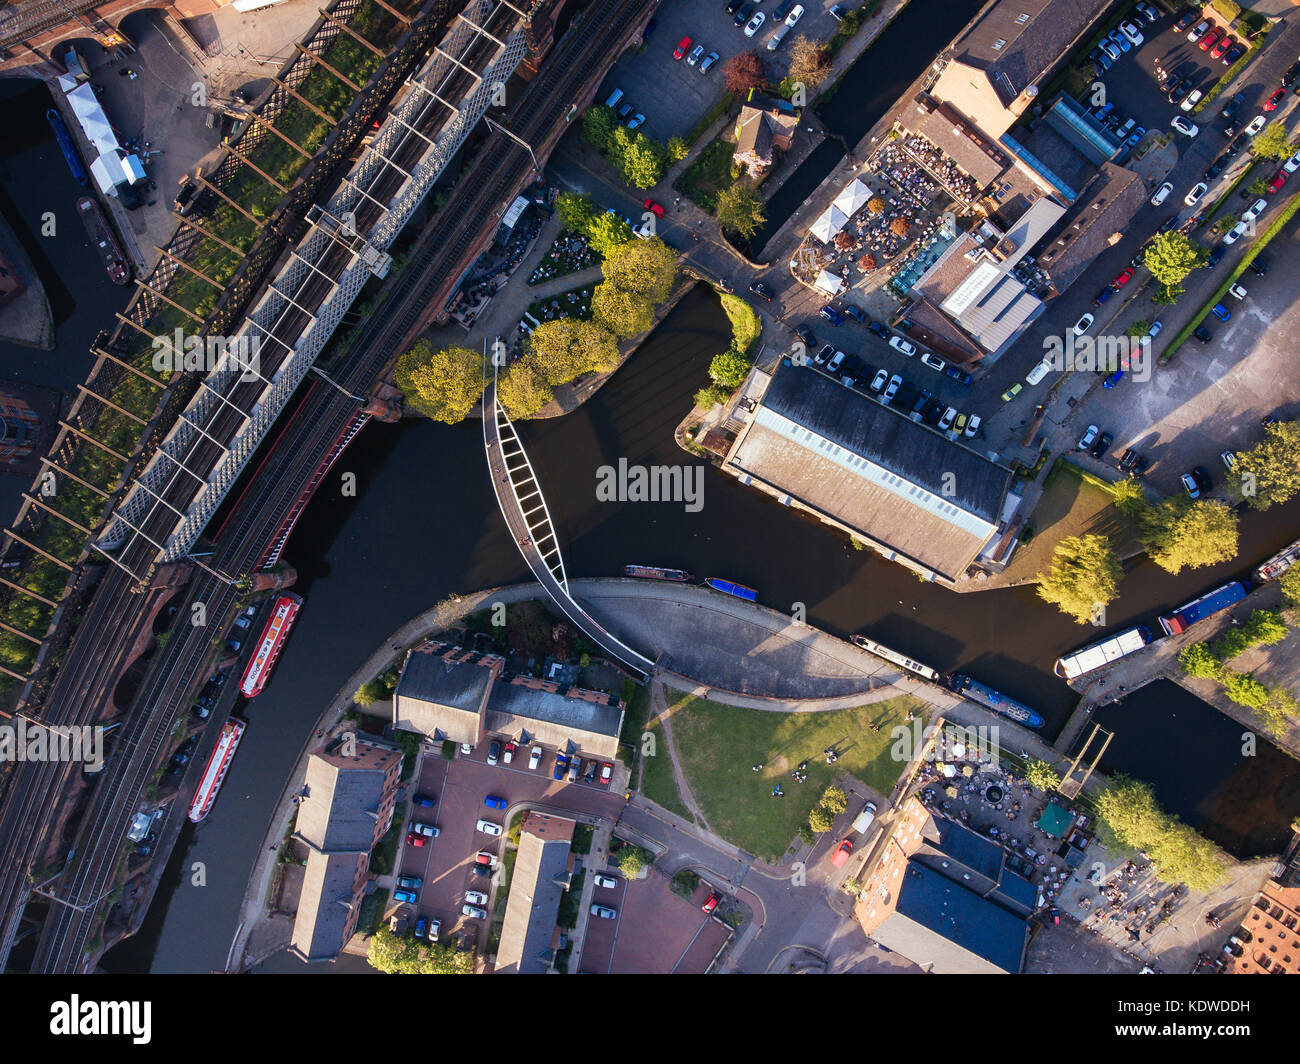 A drone view above castle field canals in manchester city centre - Stock Image